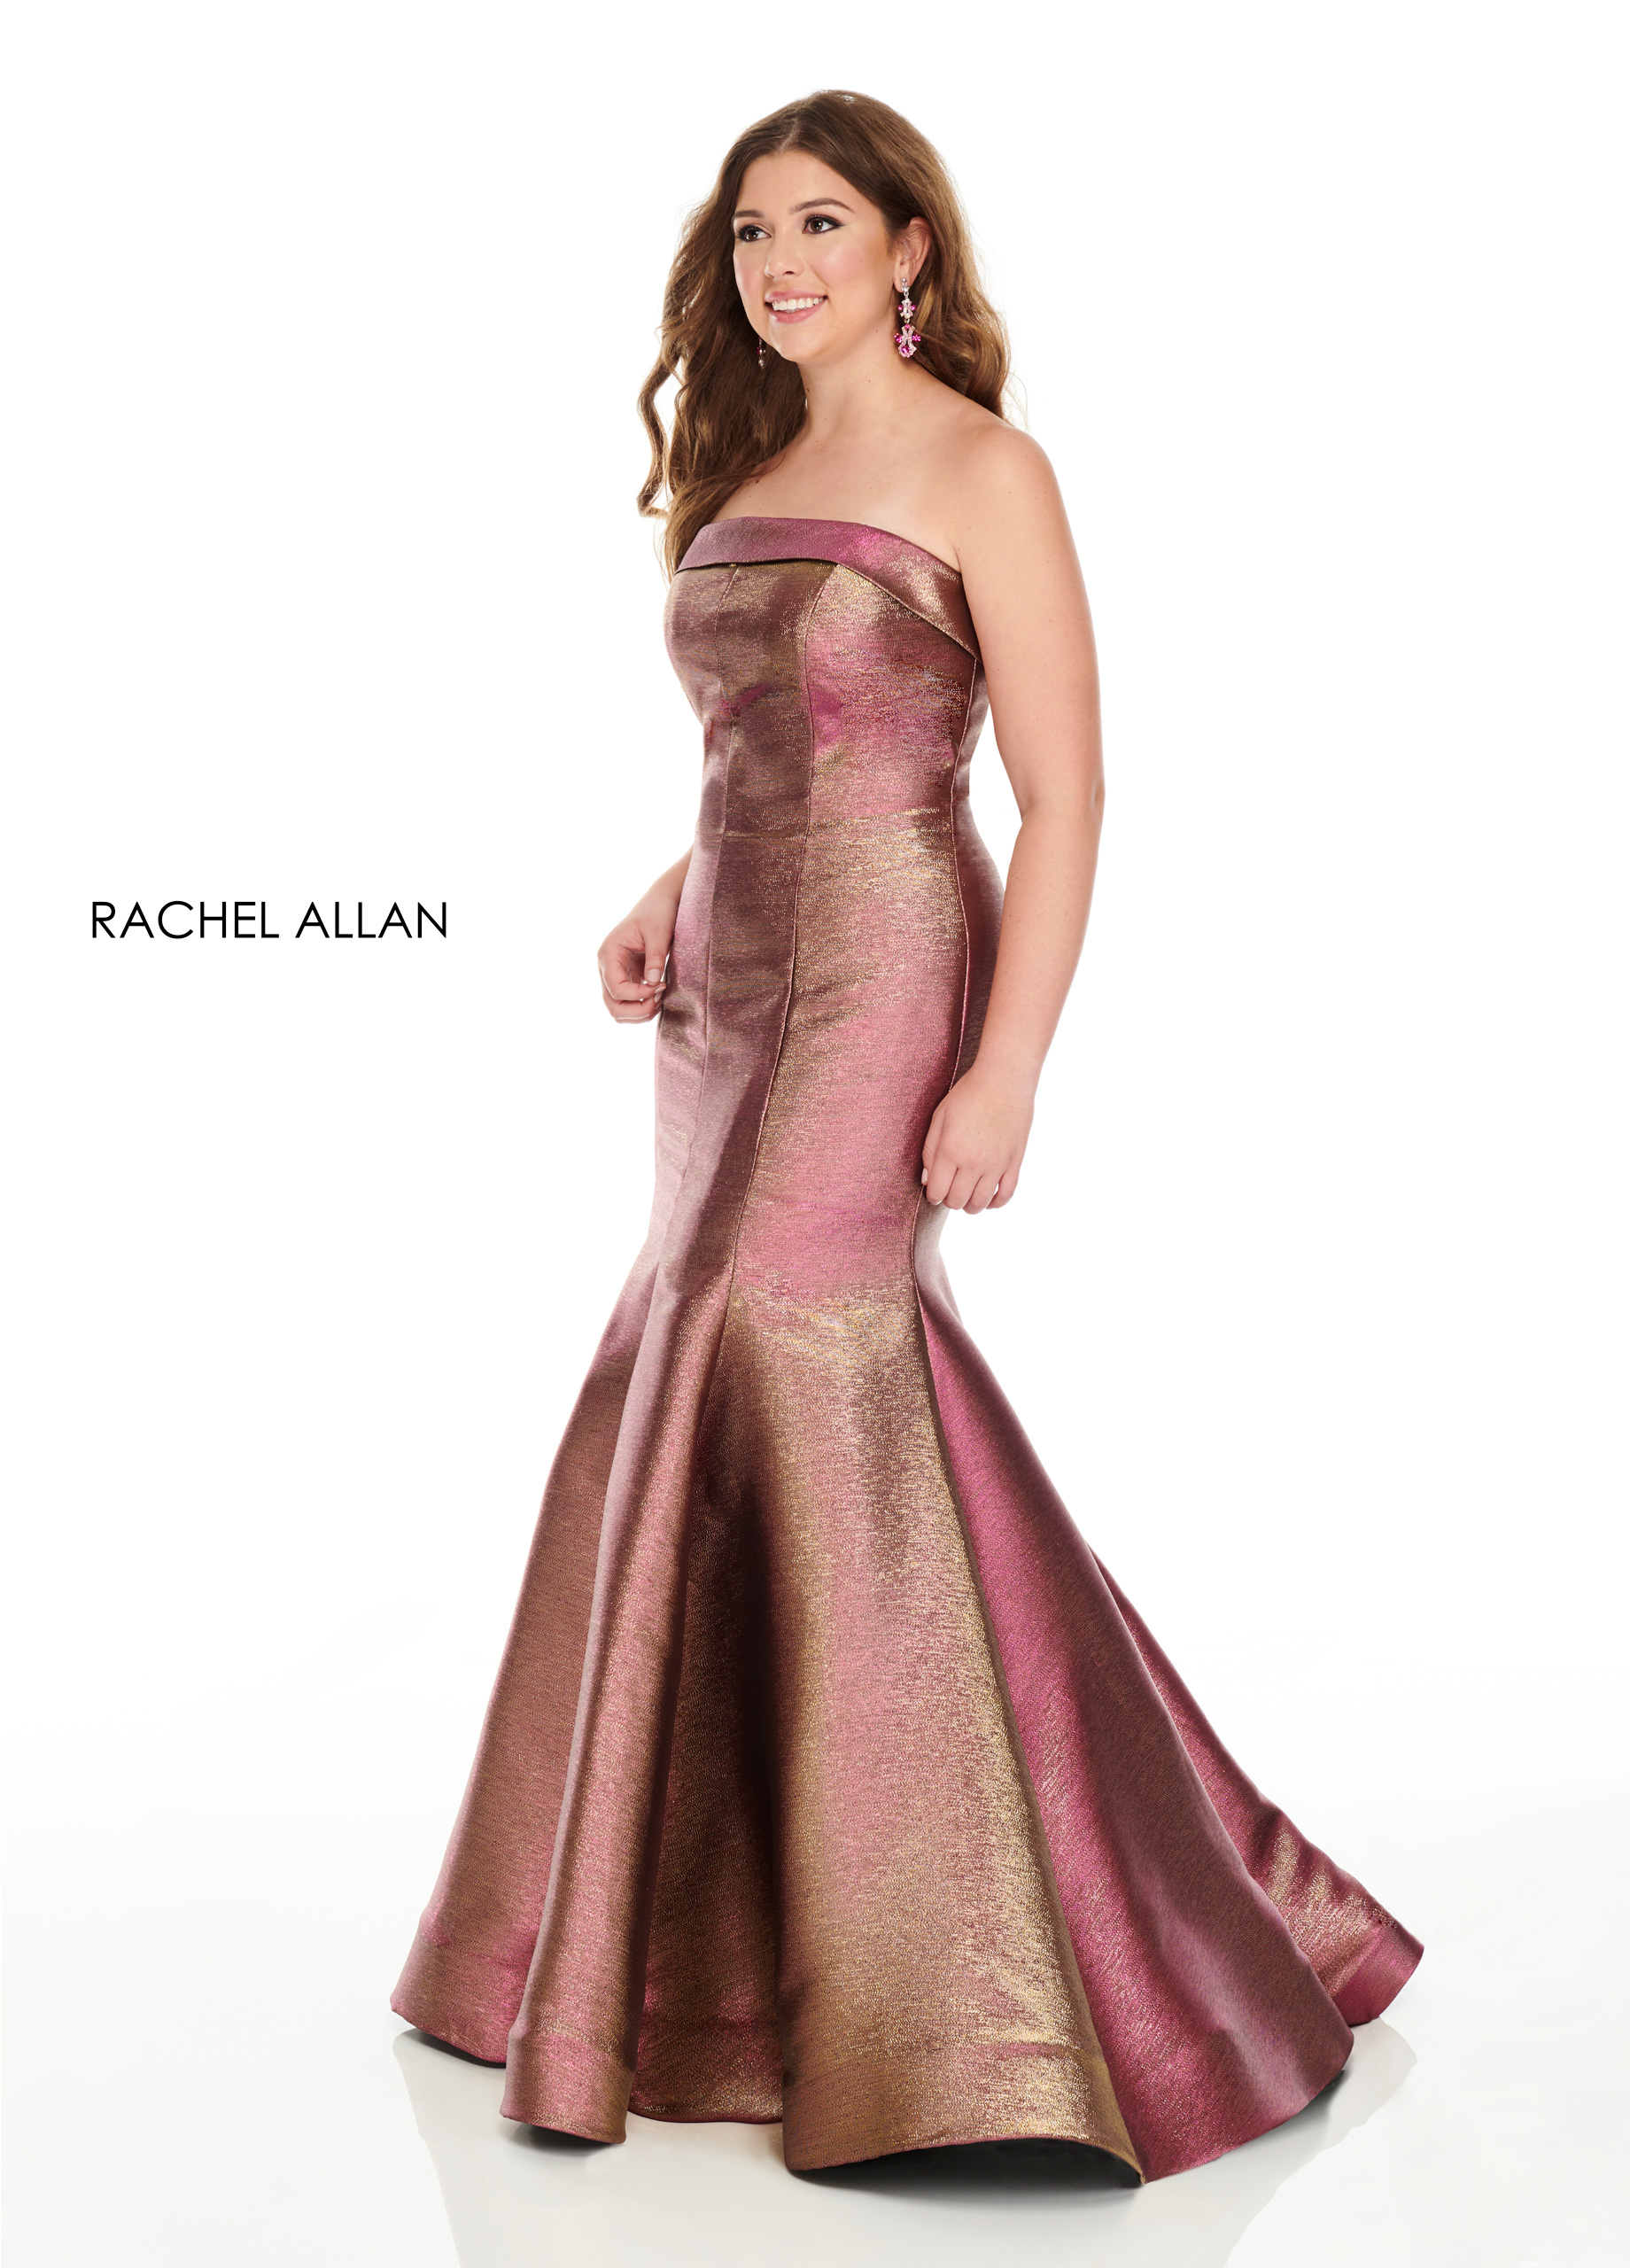 Strapless Mermaid Plus Size Dresses in Magenta Color